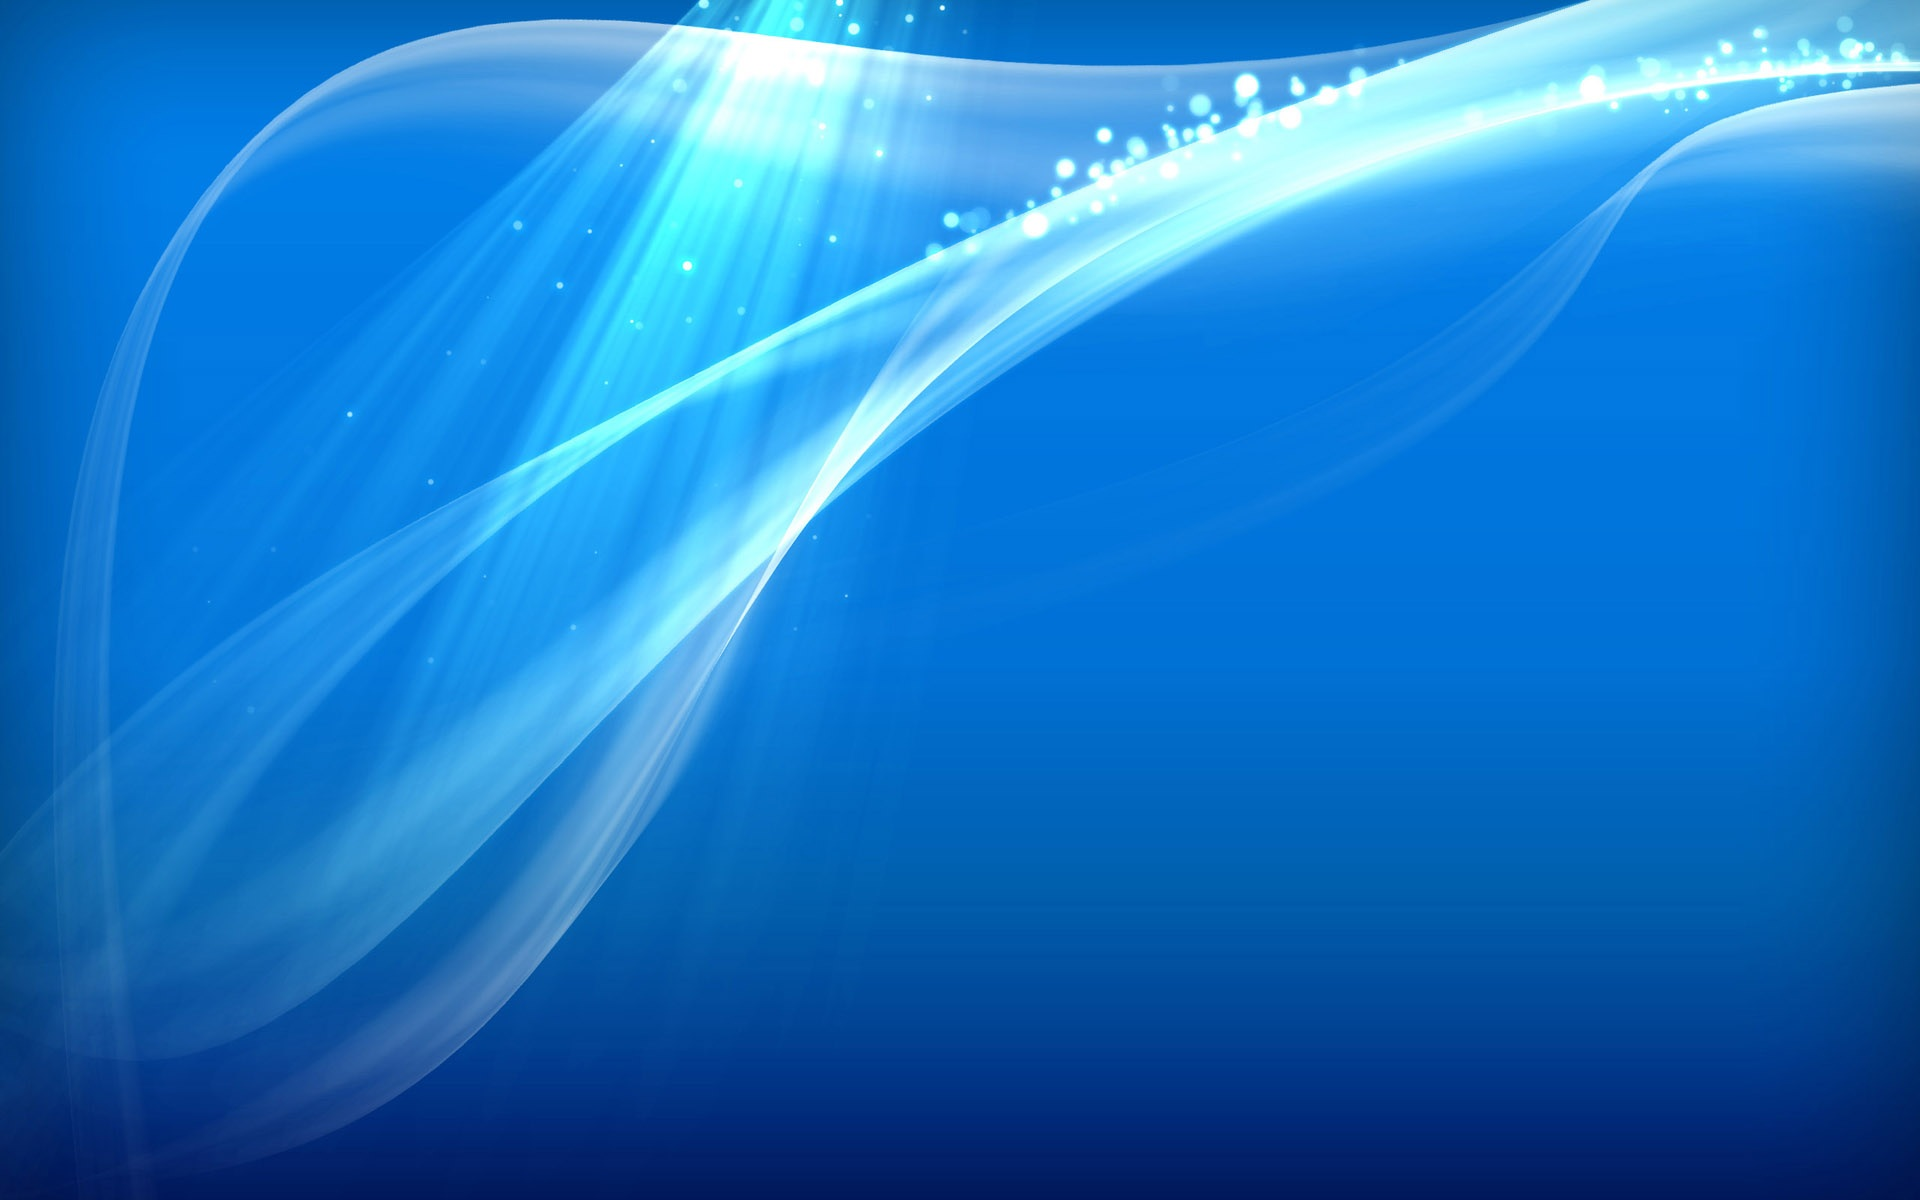 3d wallpaper blue light - photo #10